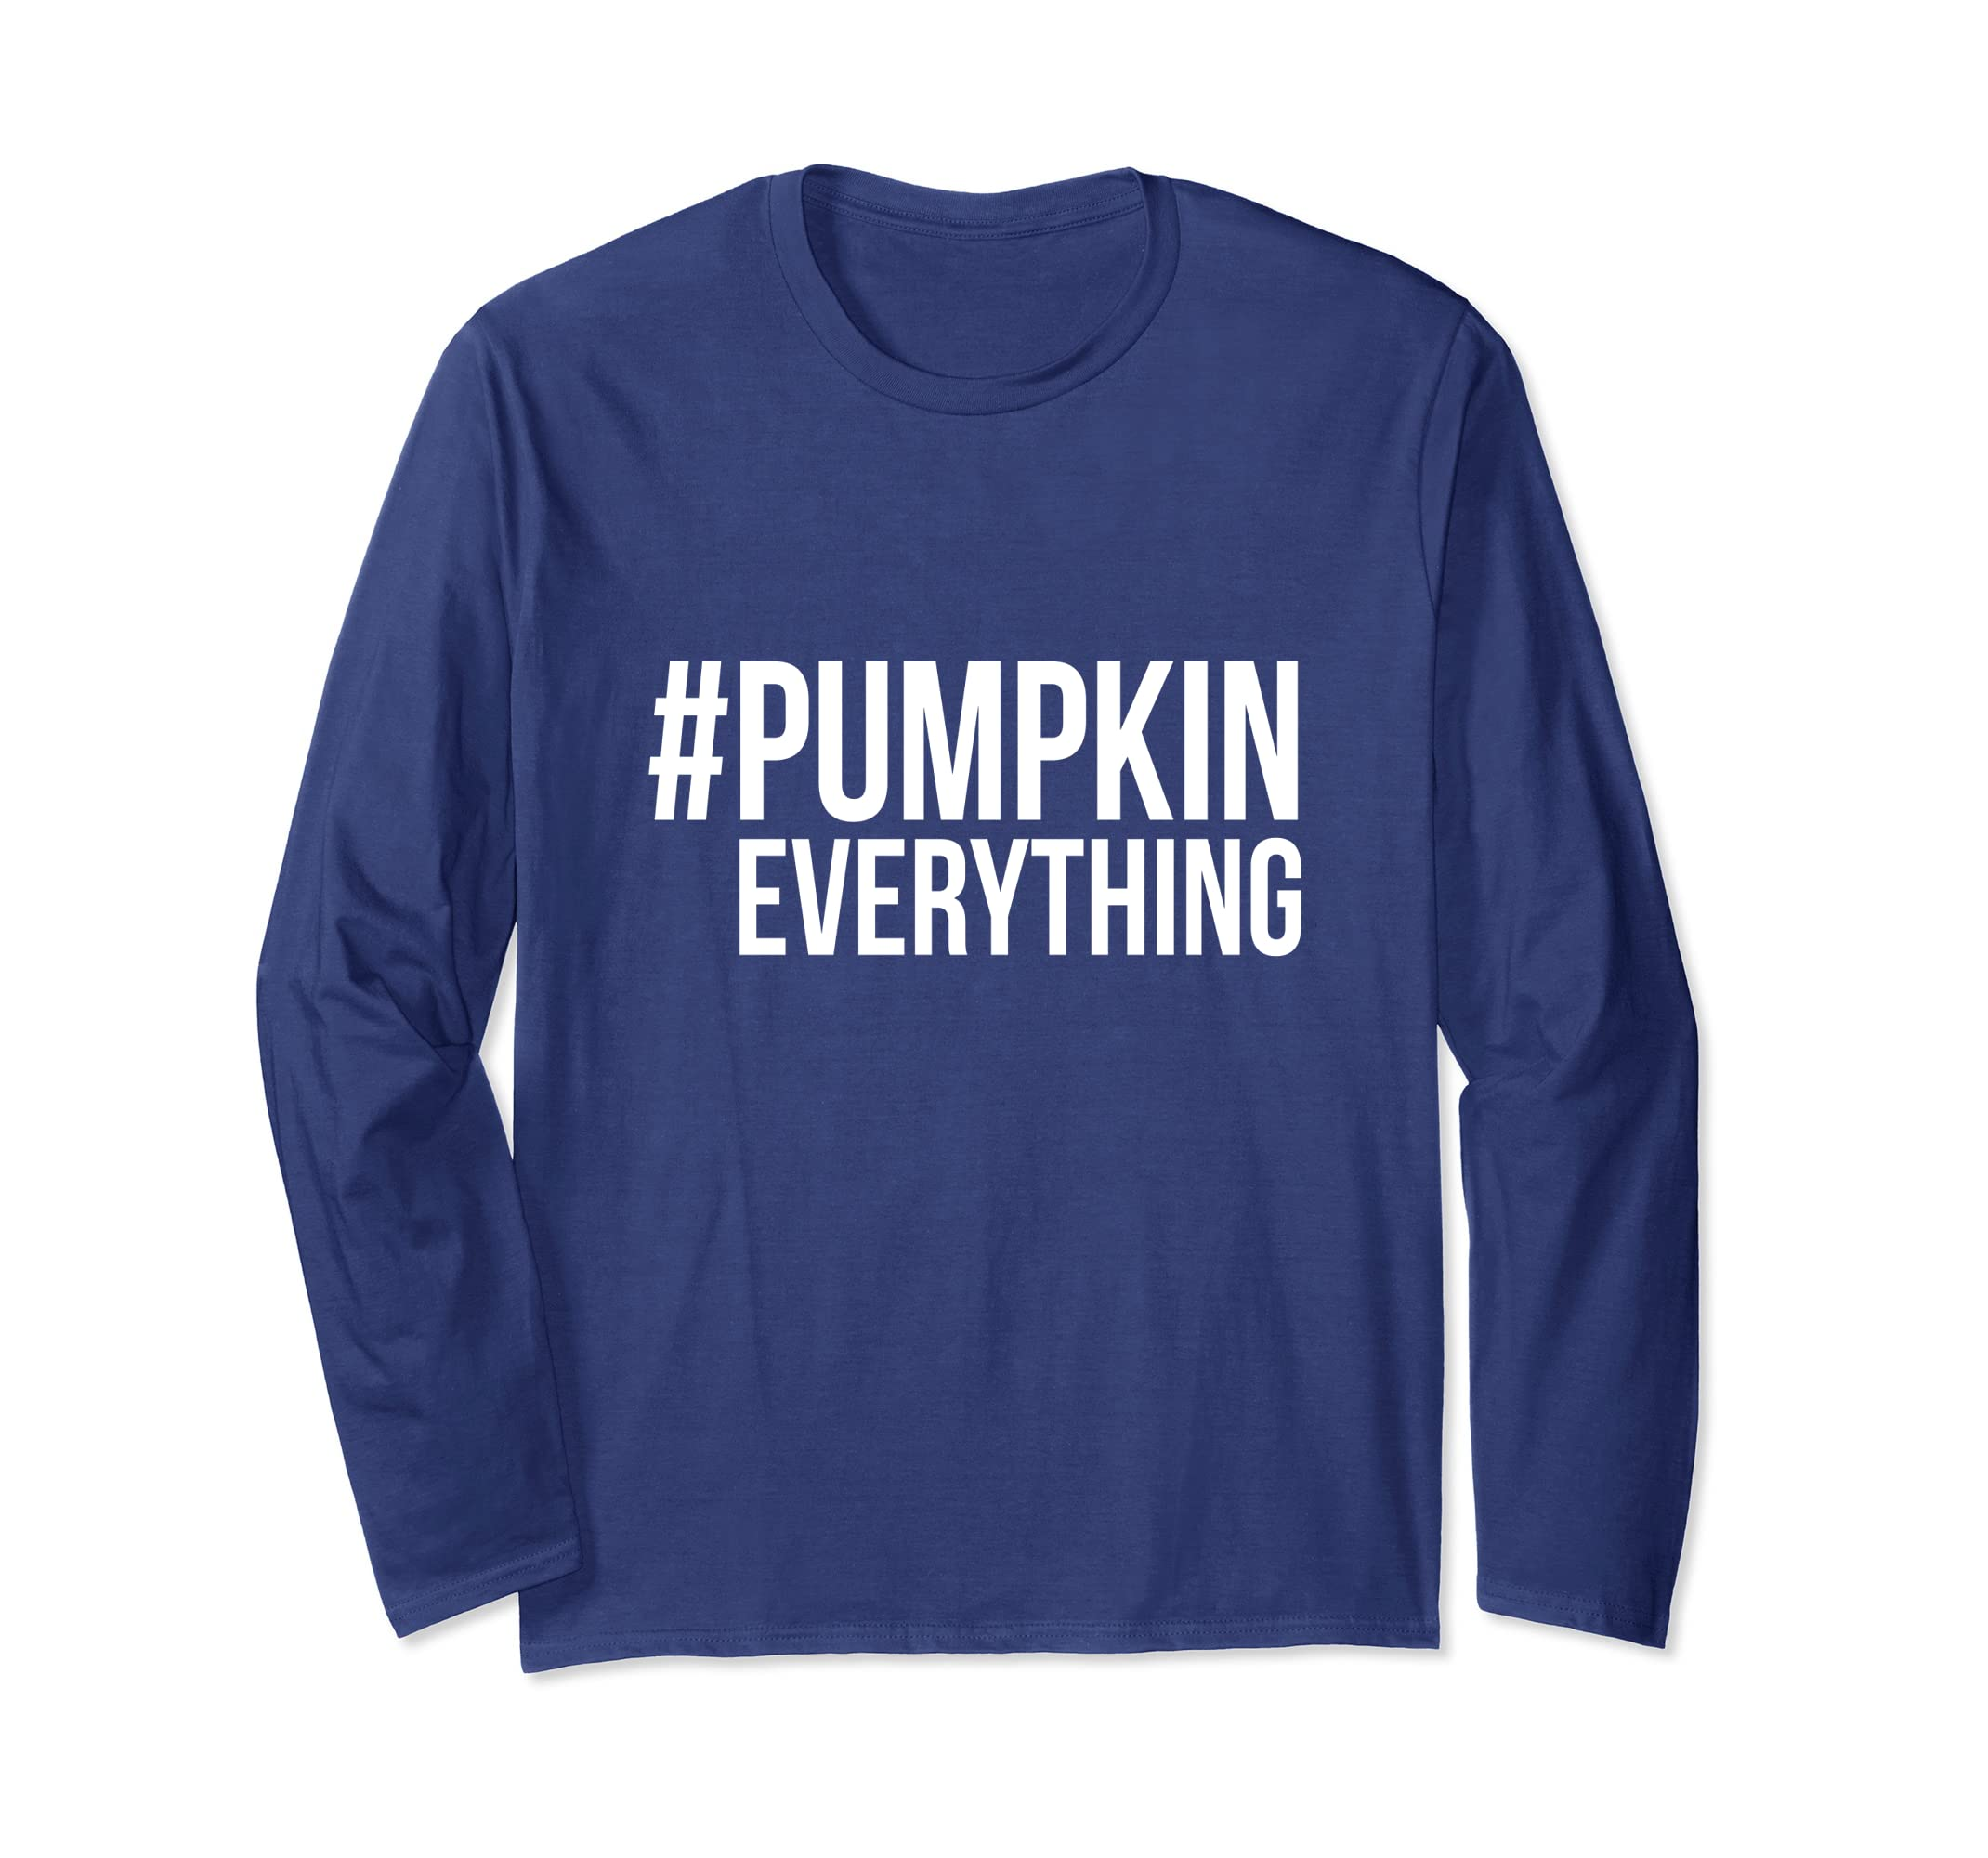 #PumpkinEverything Long Sleeve T Shirt Hashtag Pumpkin-azvn